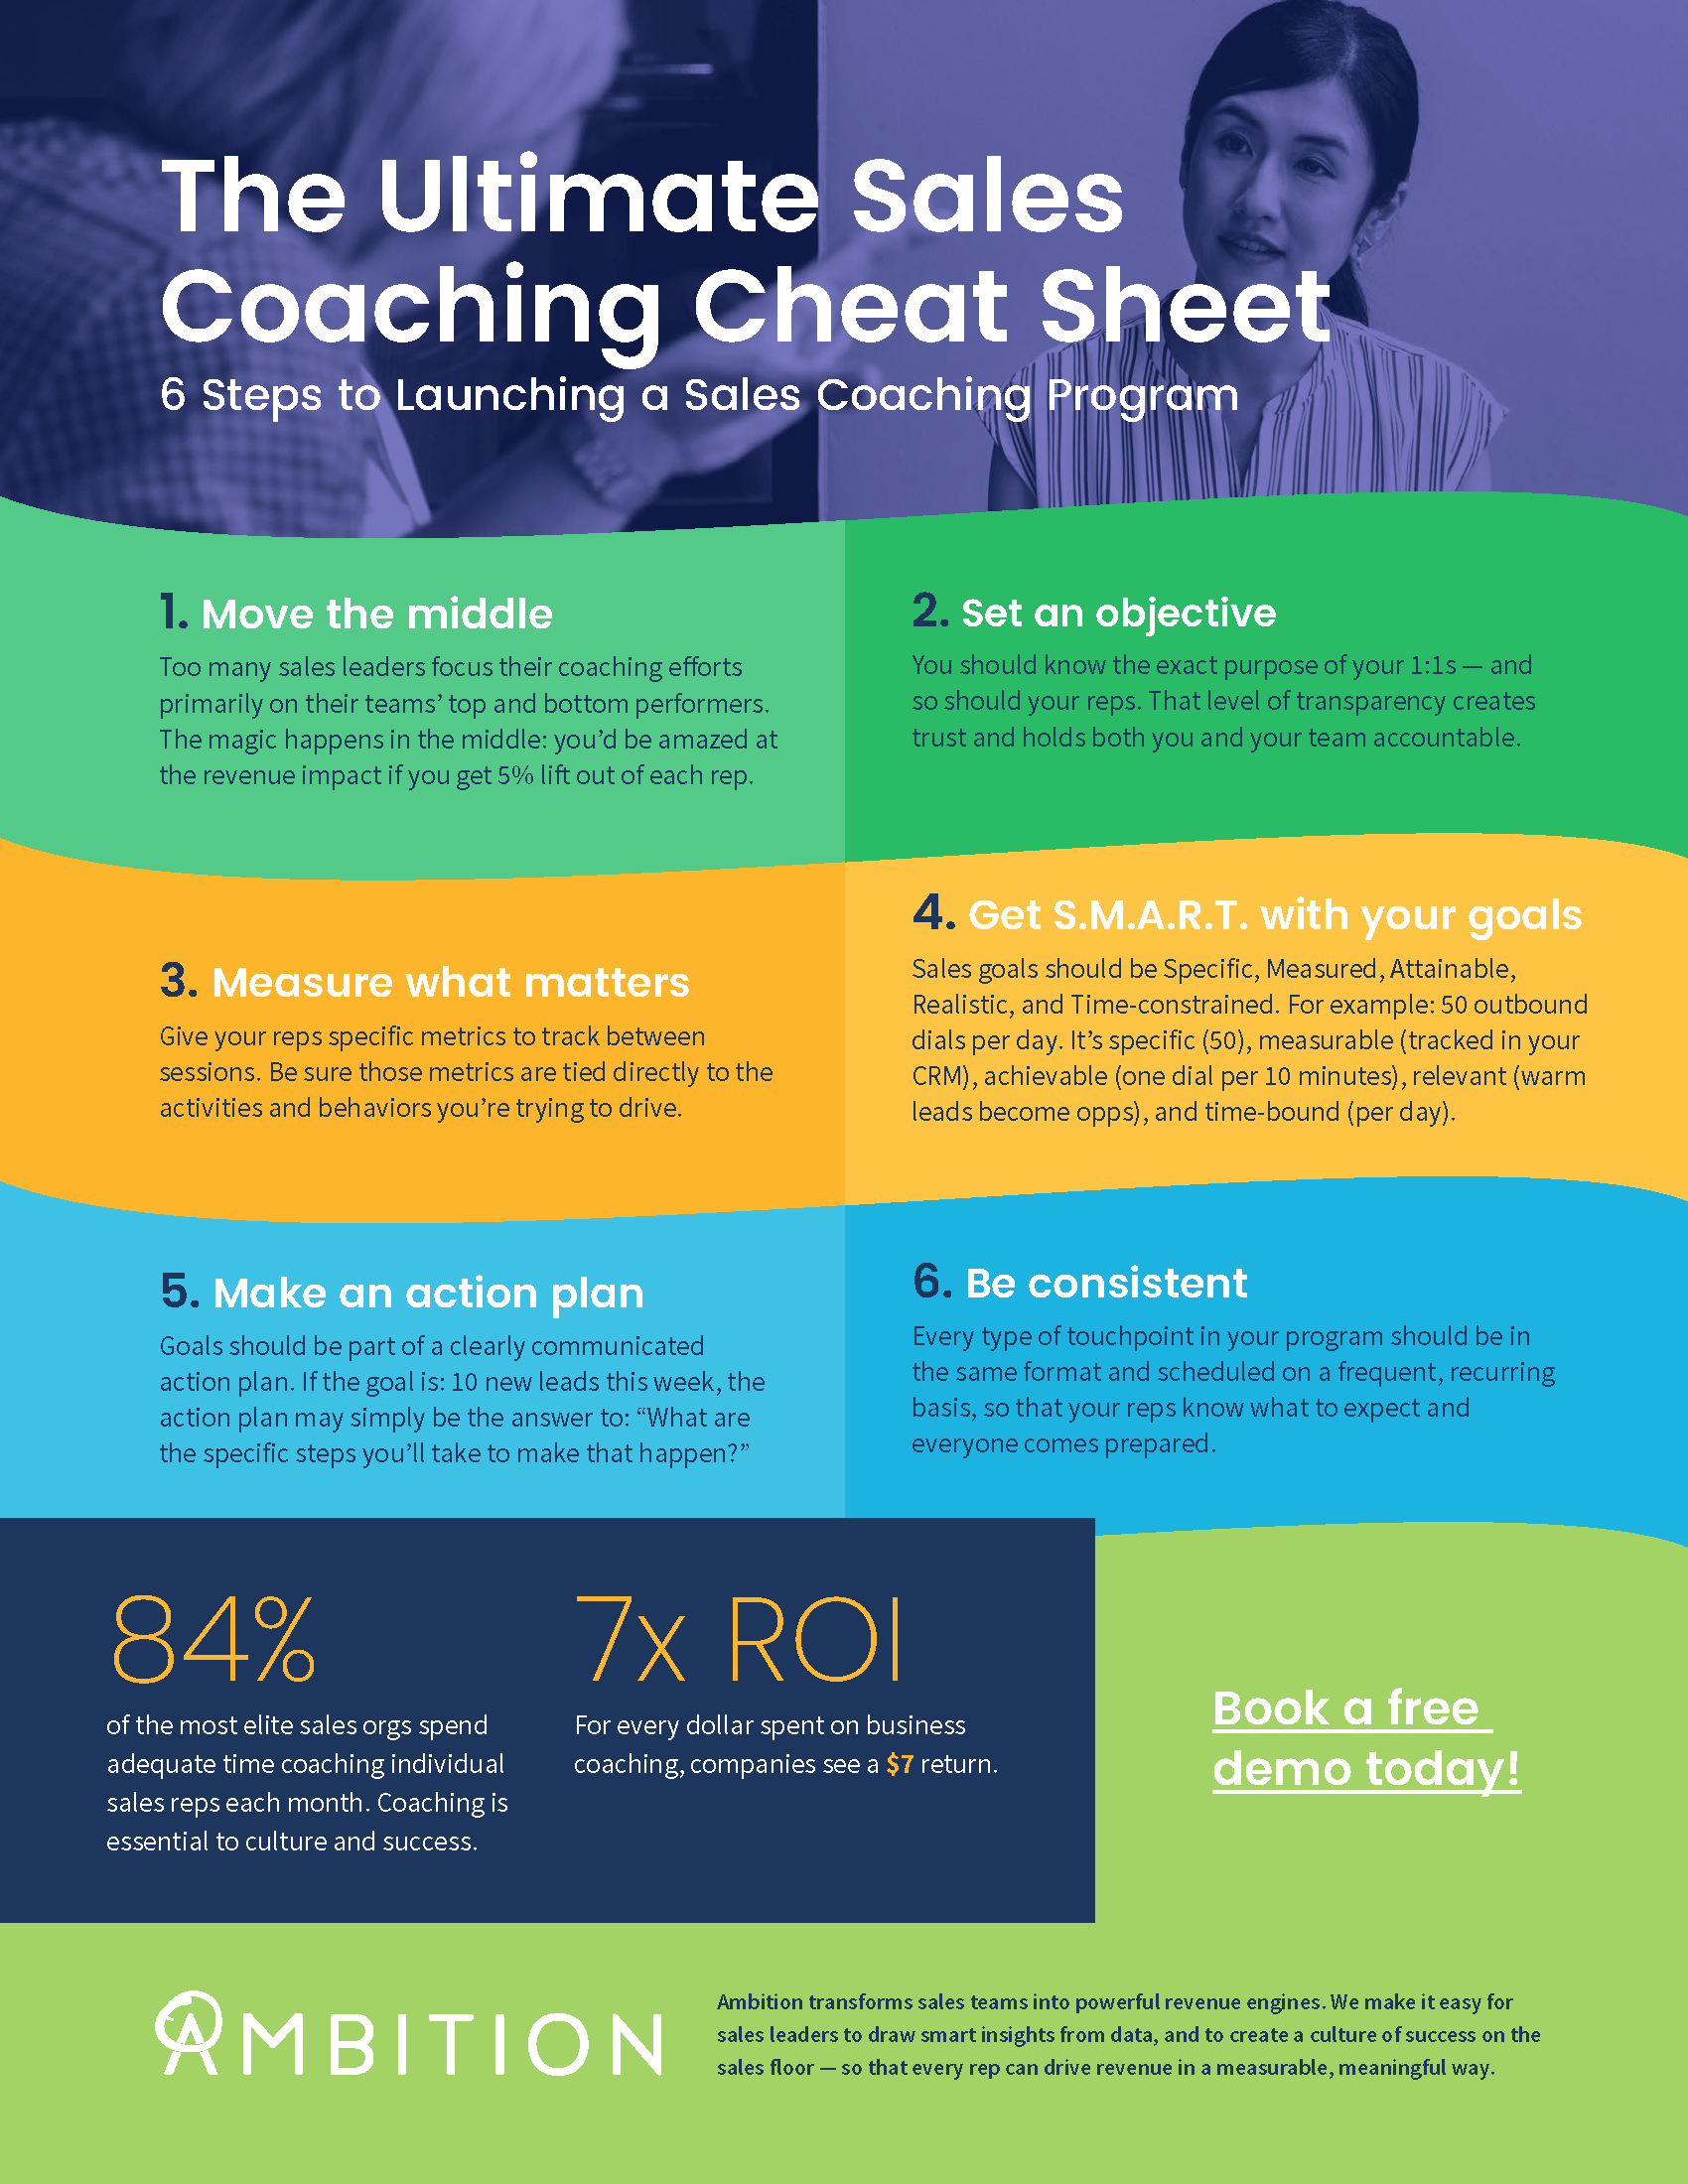 Ambition | The Ultimate Sales Coaching Cheat Sheet